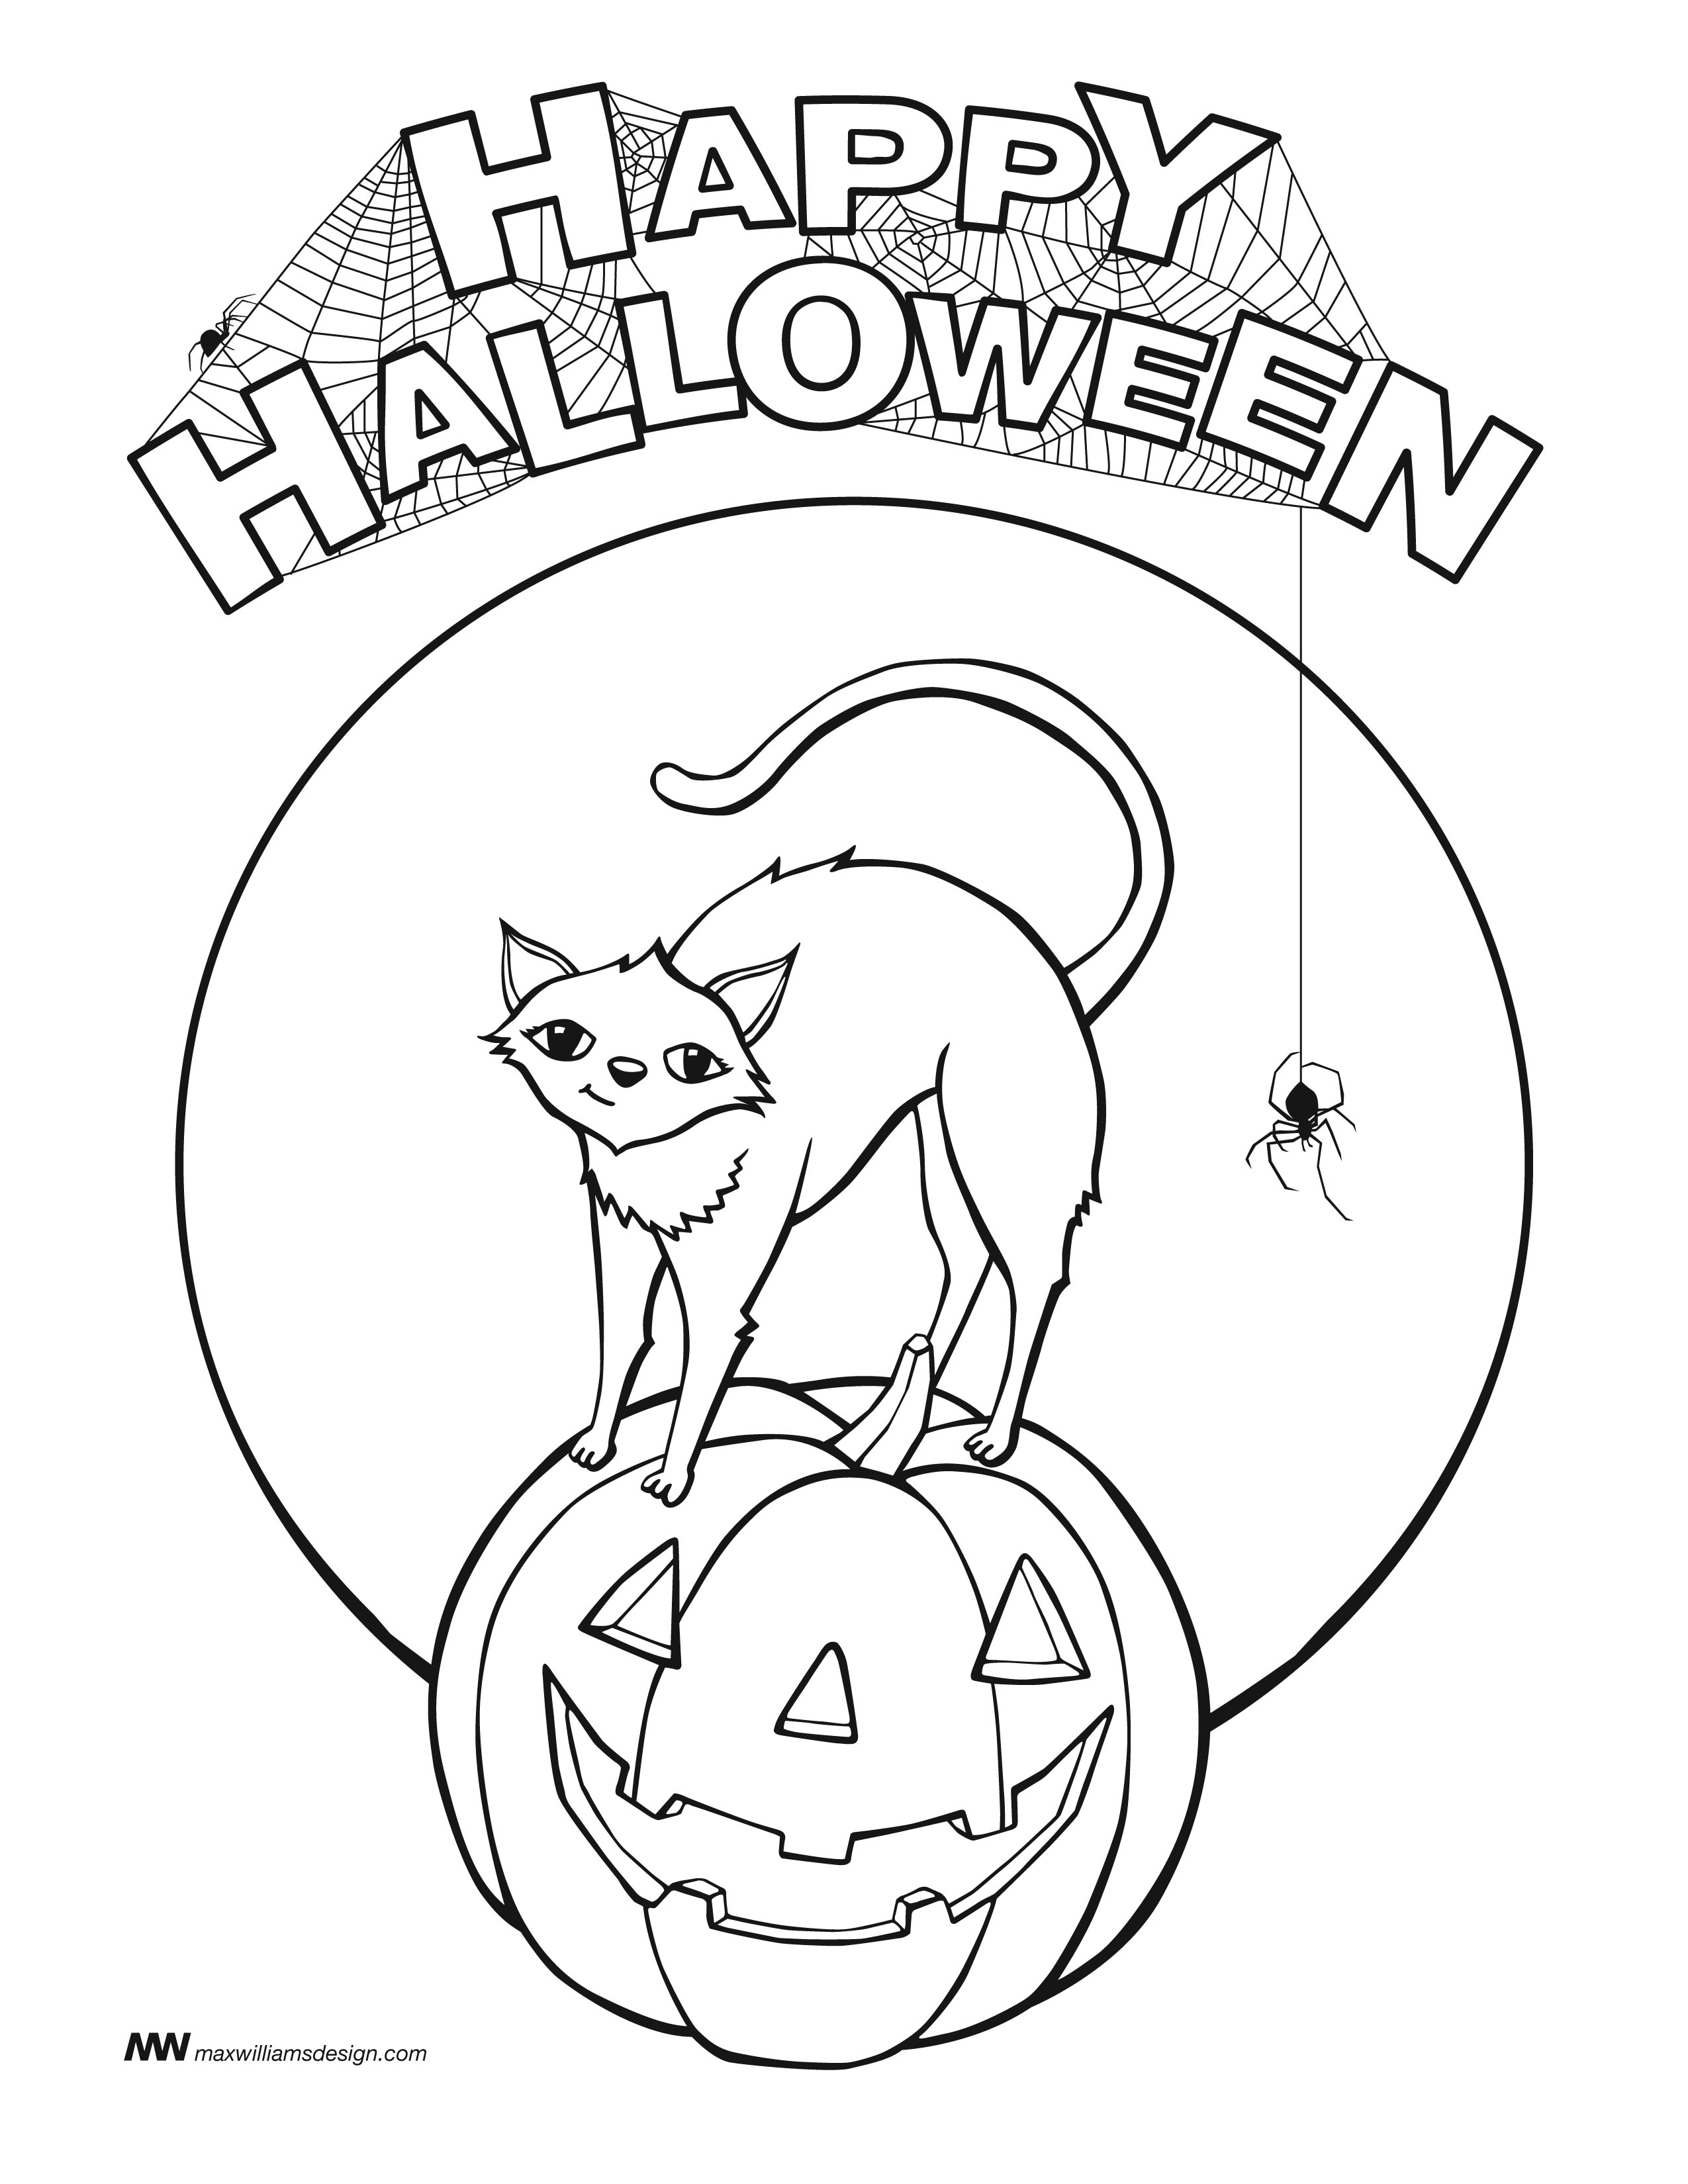 Halloween Drawing To Print at GetDrawings.com | Free for personal ...